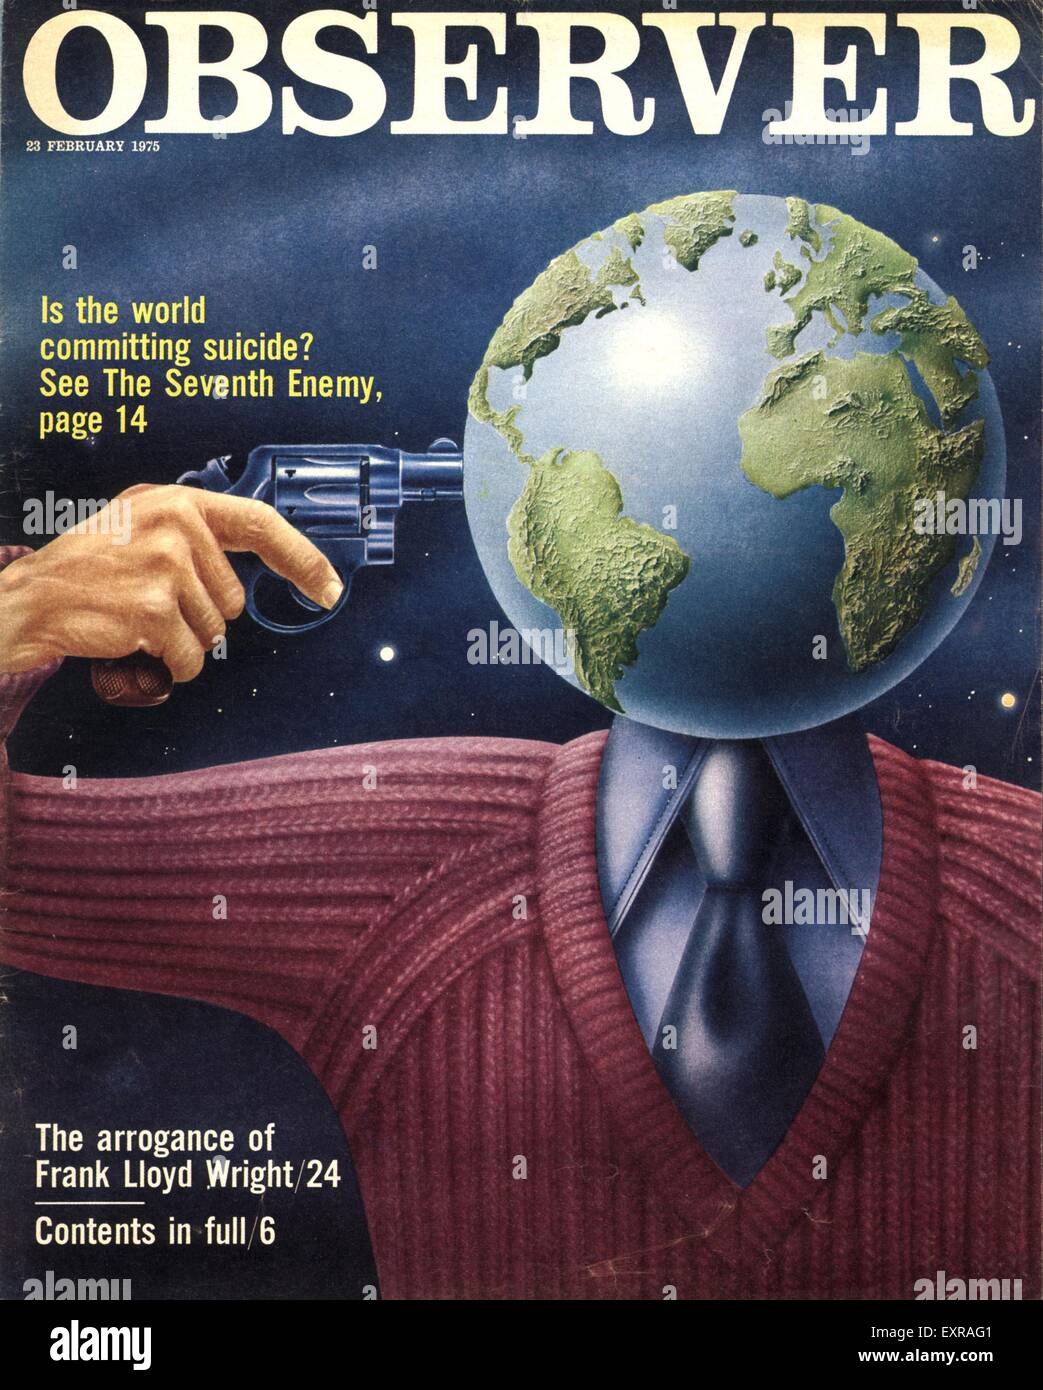 1970s UK Observer World Suicide Magazine Cover - Stock Image